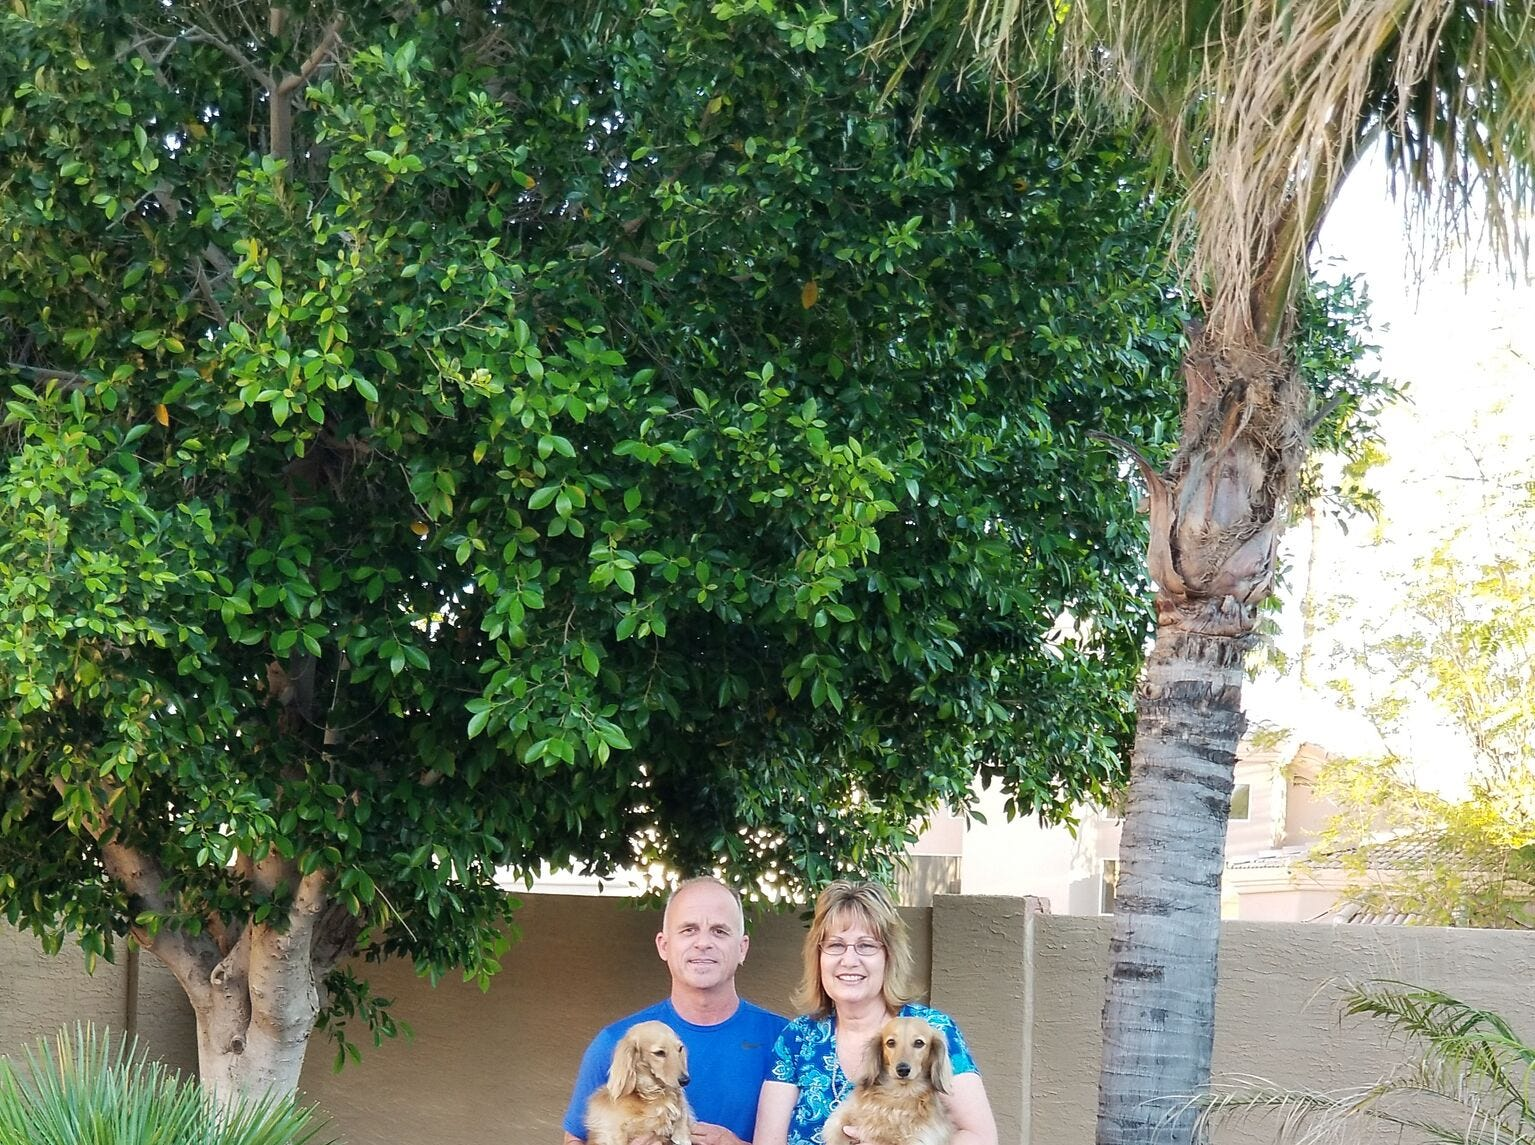 Mary Beth and Bruce LeBoeuf with pups, Finley and Gunner.